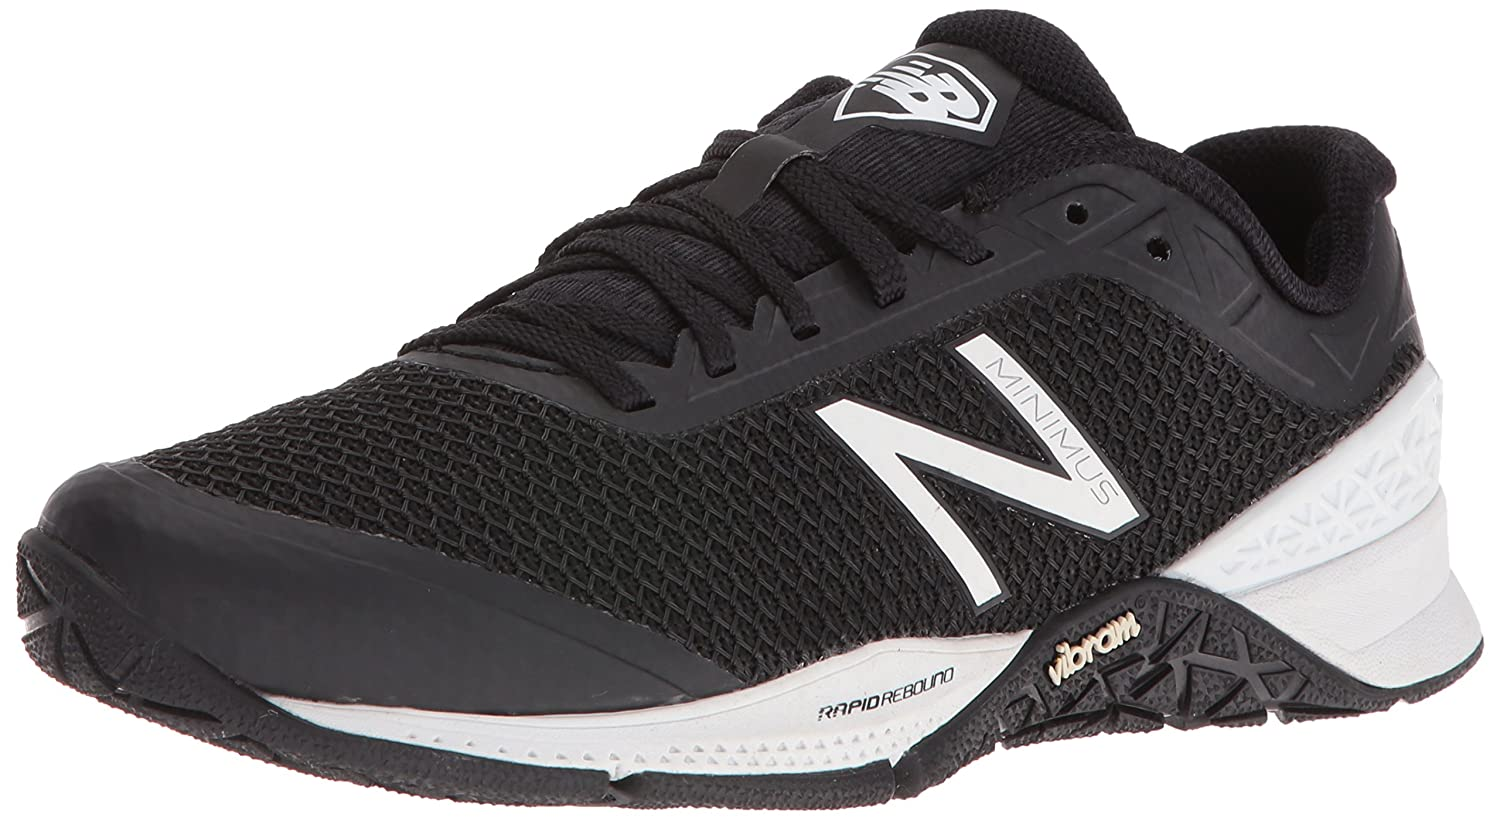 New Balance Women's WX40V1 Cross Trainers B01CQVU6R2 9 B(M) US|Black/White